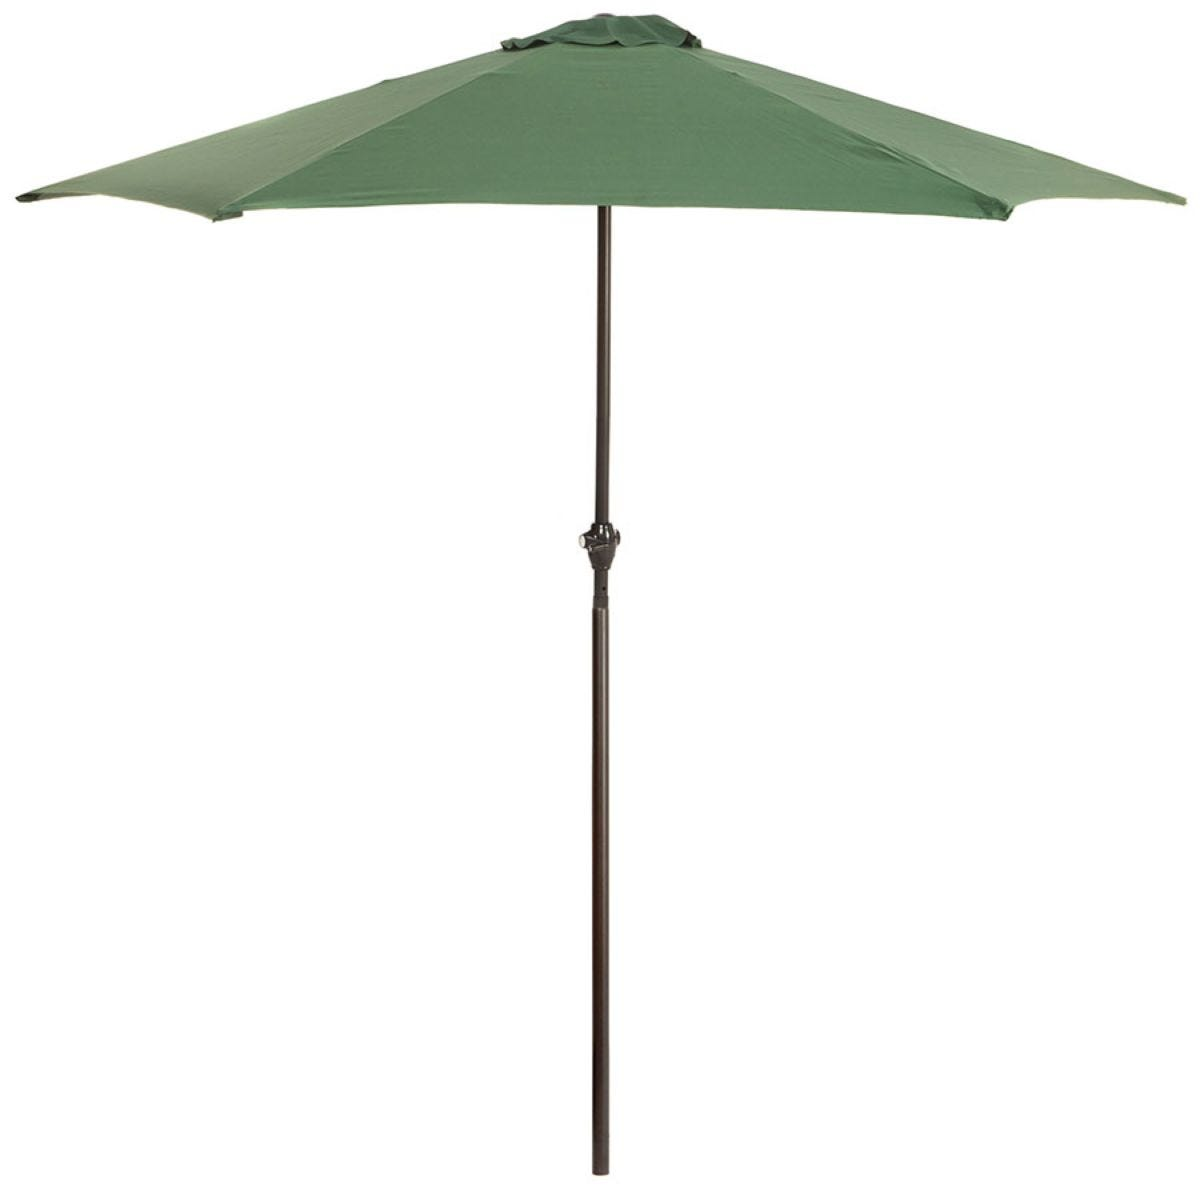 2.7m Large Garden Parasol with Metal Frame (base not included) - Dark Green